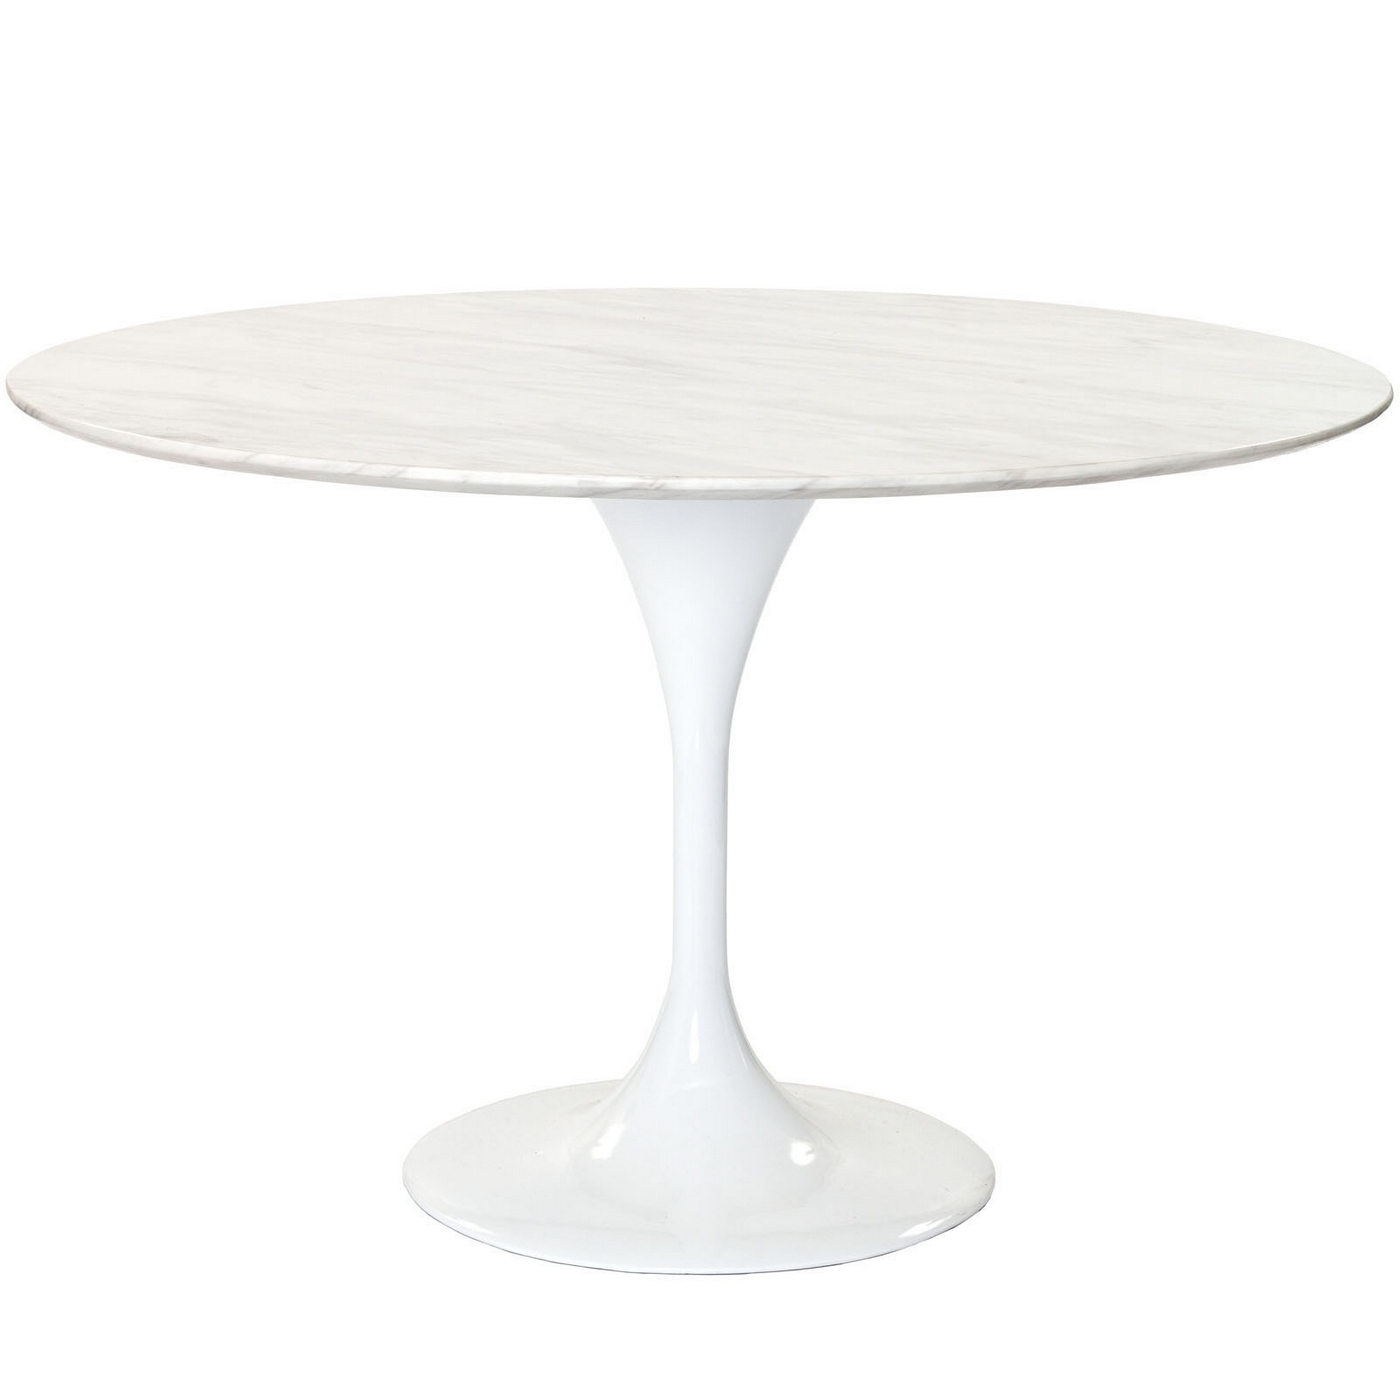 Marble Table Tops Round Lippa 48034 Round Marble Top Dining Table With Lacquered